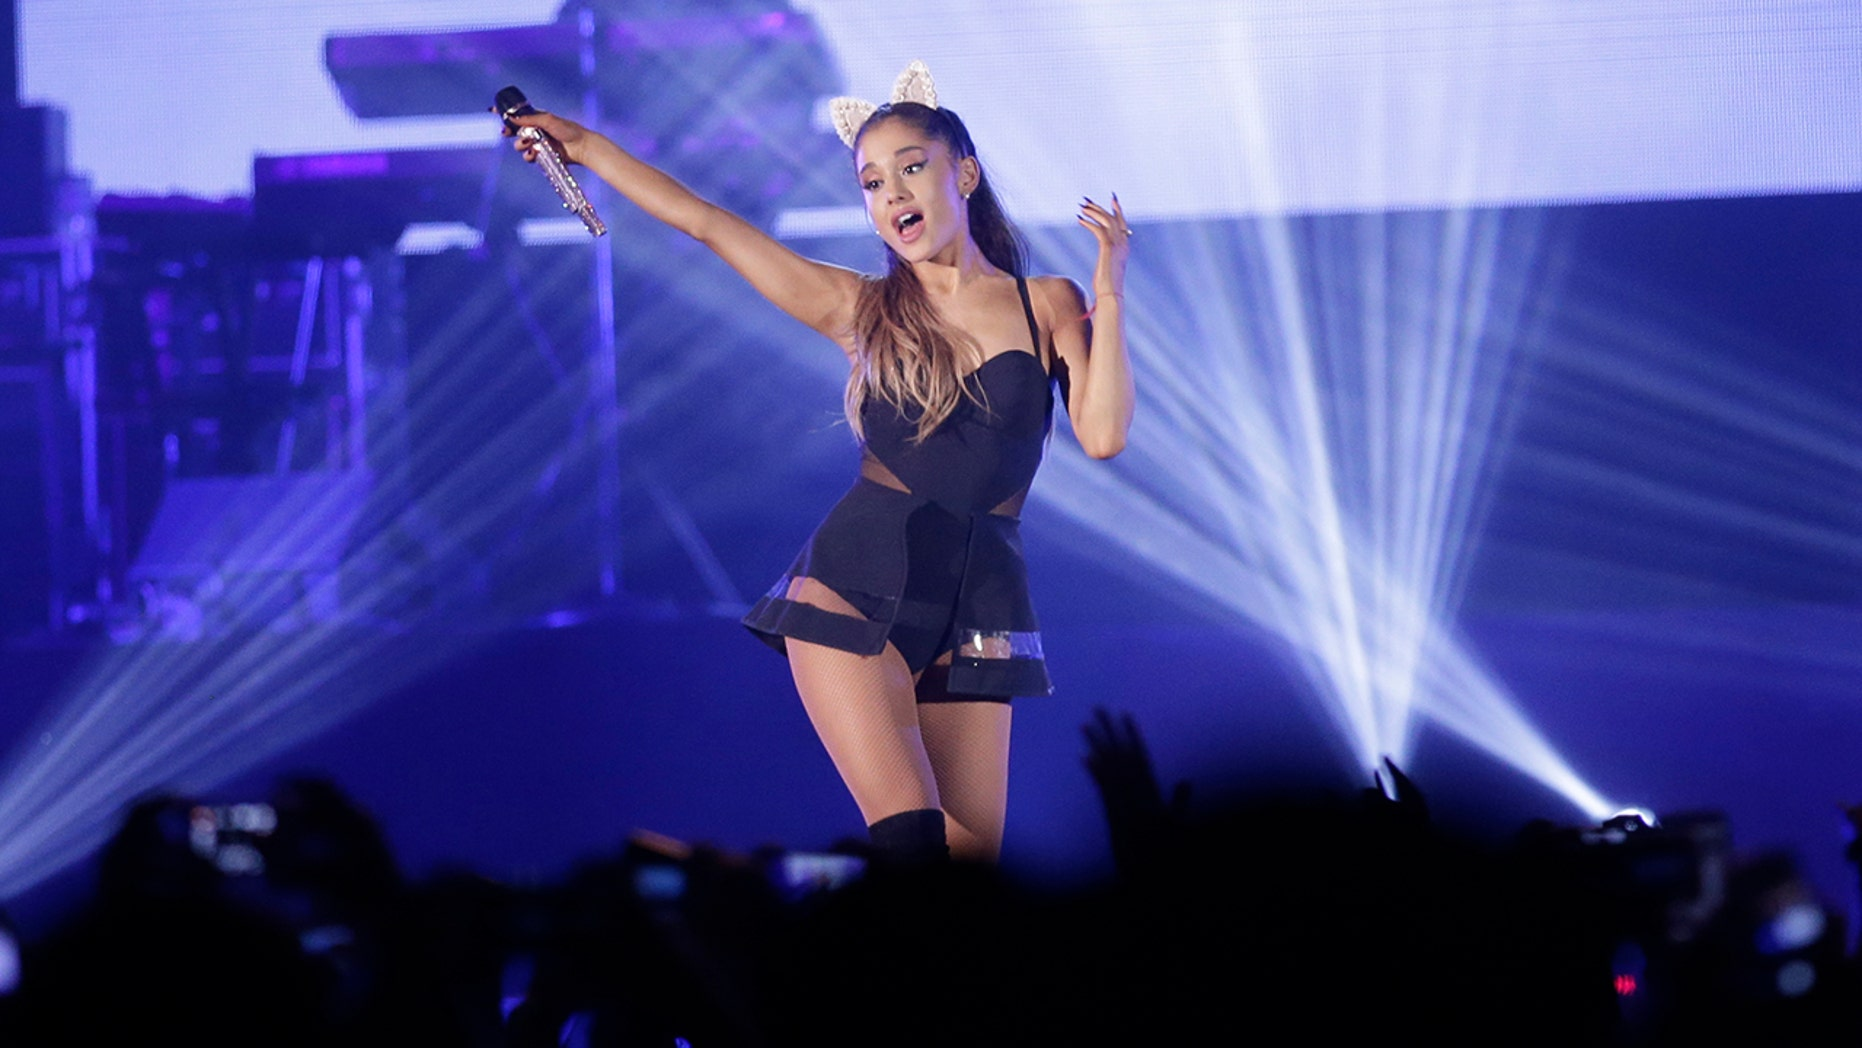 In this Aug. 26, 2015 file photo, Ariana Grande performs during the honeymoon tour concert in Jakarta, Indonesia. Authorities in Costa Rica said on Monday, July 10 2017 they have arrested a 22-year-old Colombian man suspected of threatening to stage an attack at a concert by pop singer.